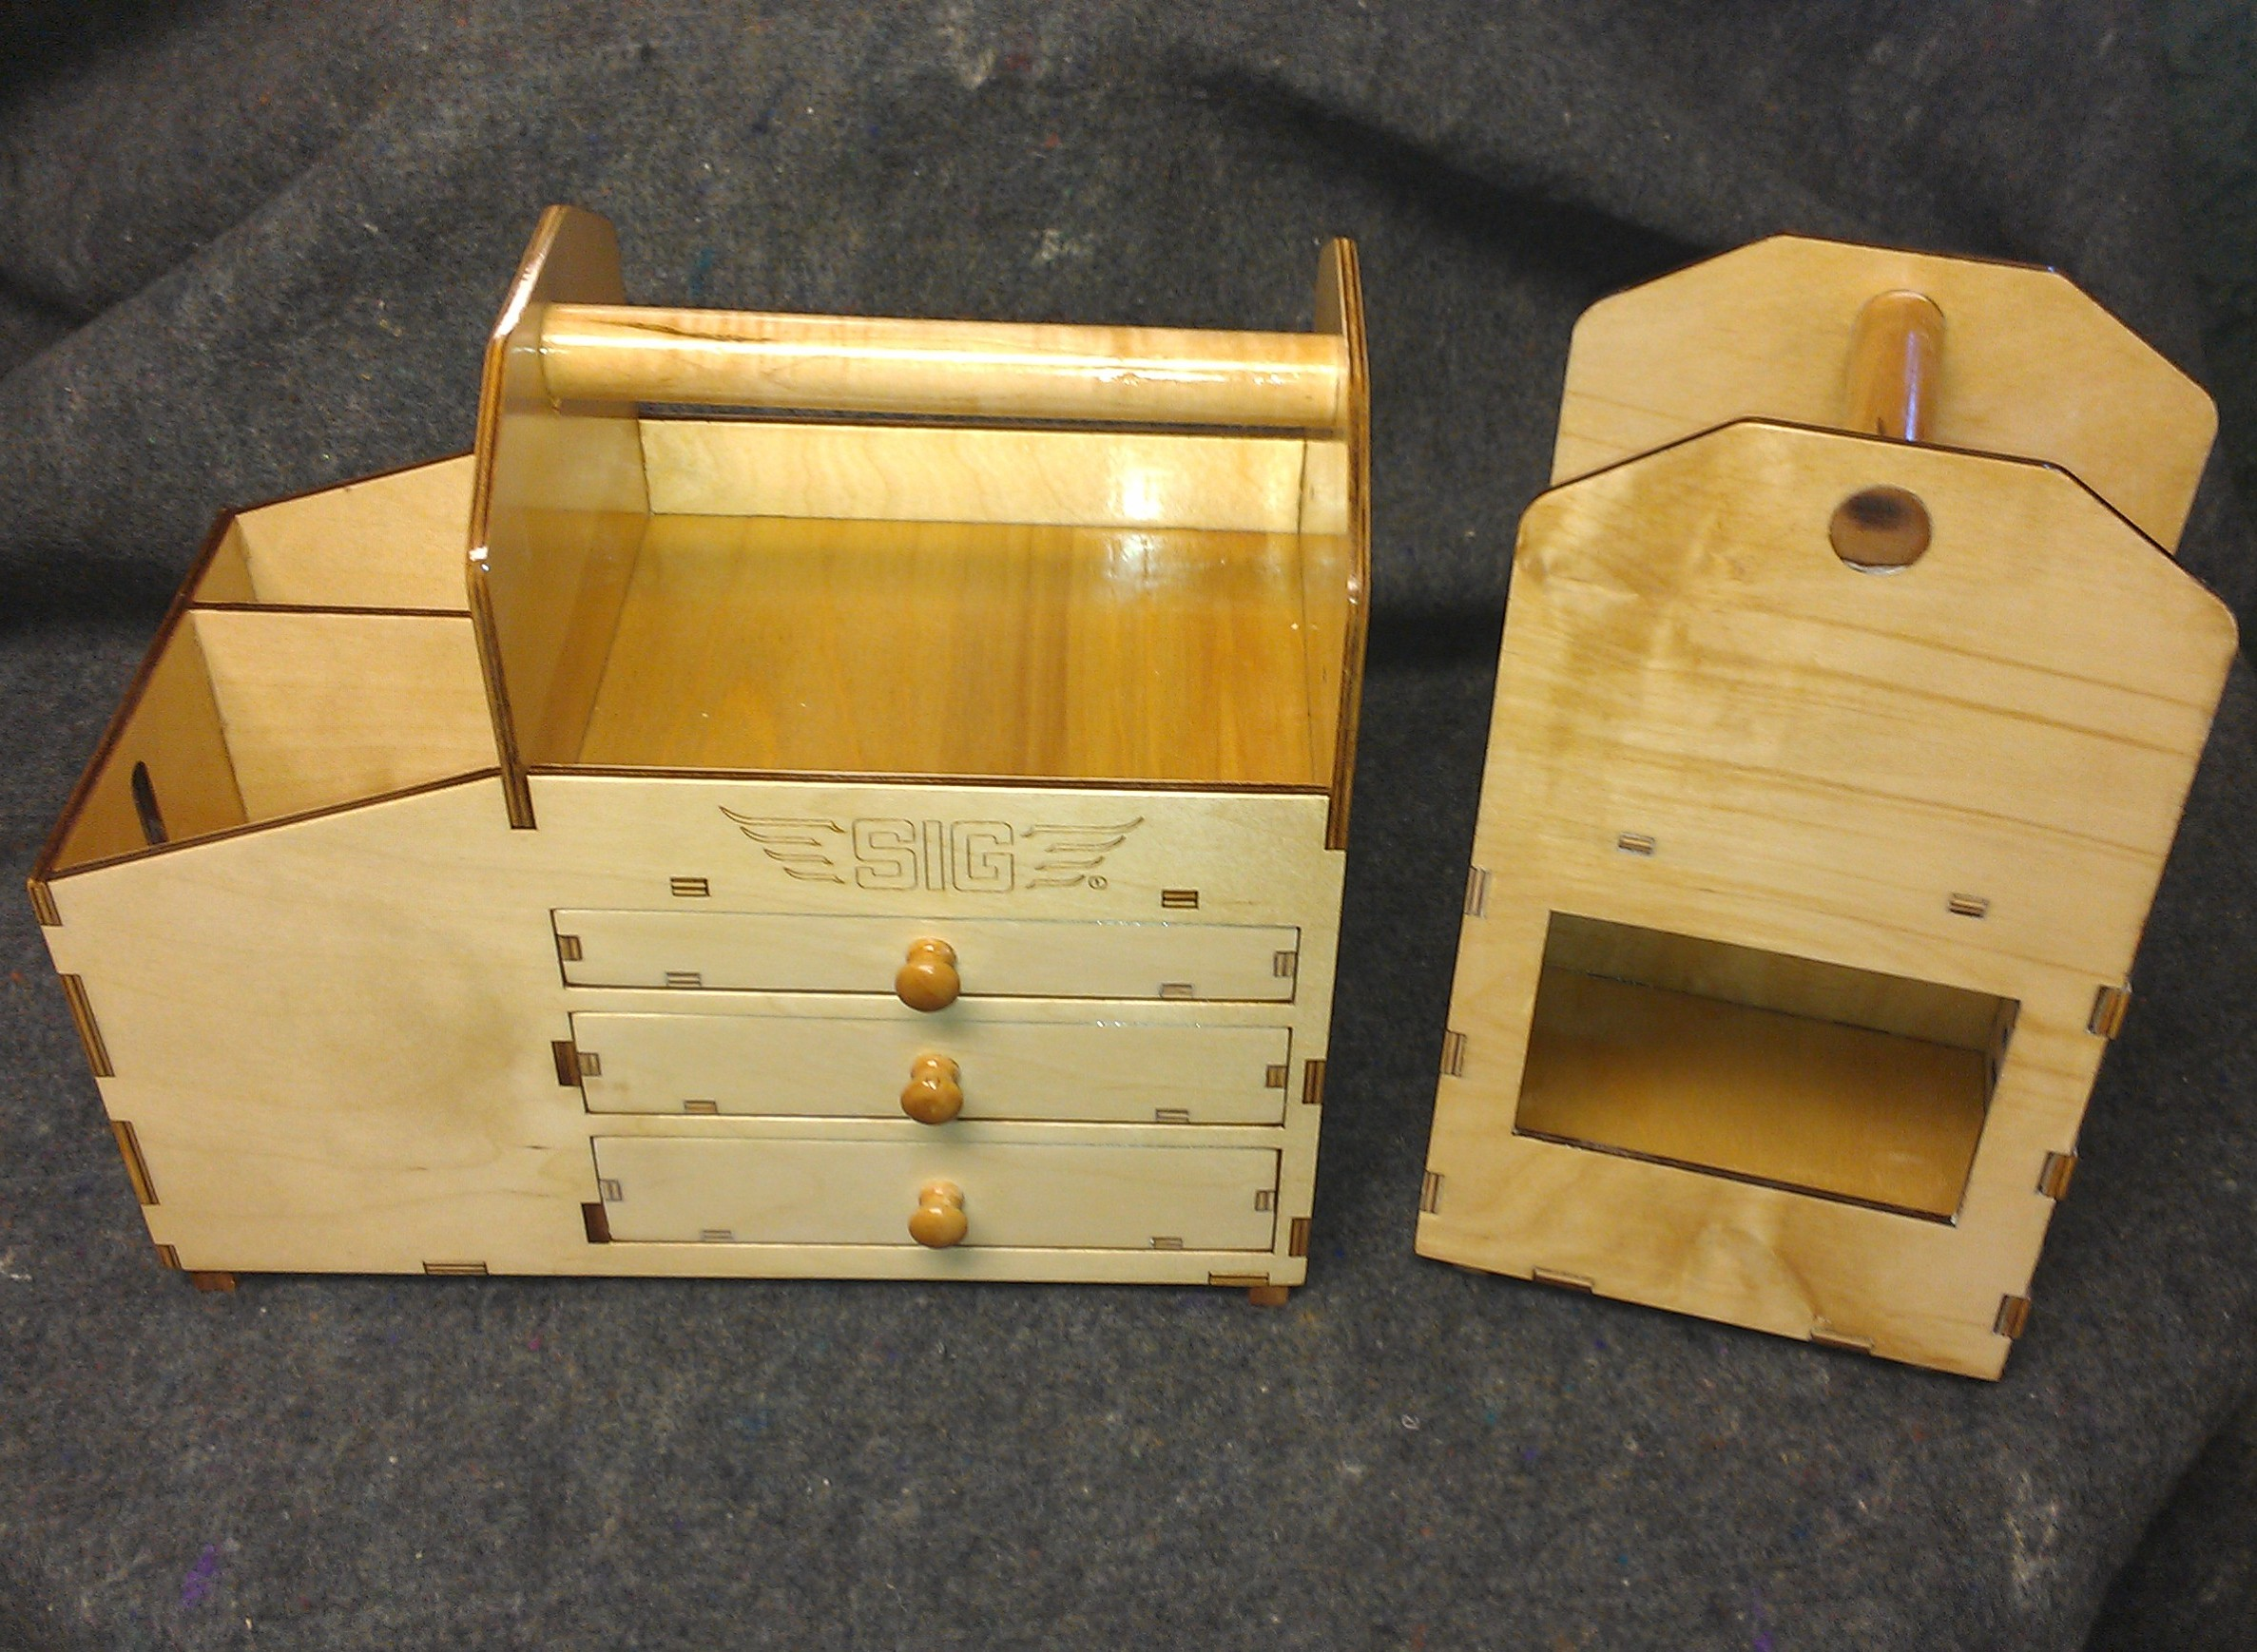 Afternoon Project Build A Flight Box Model Airplane News